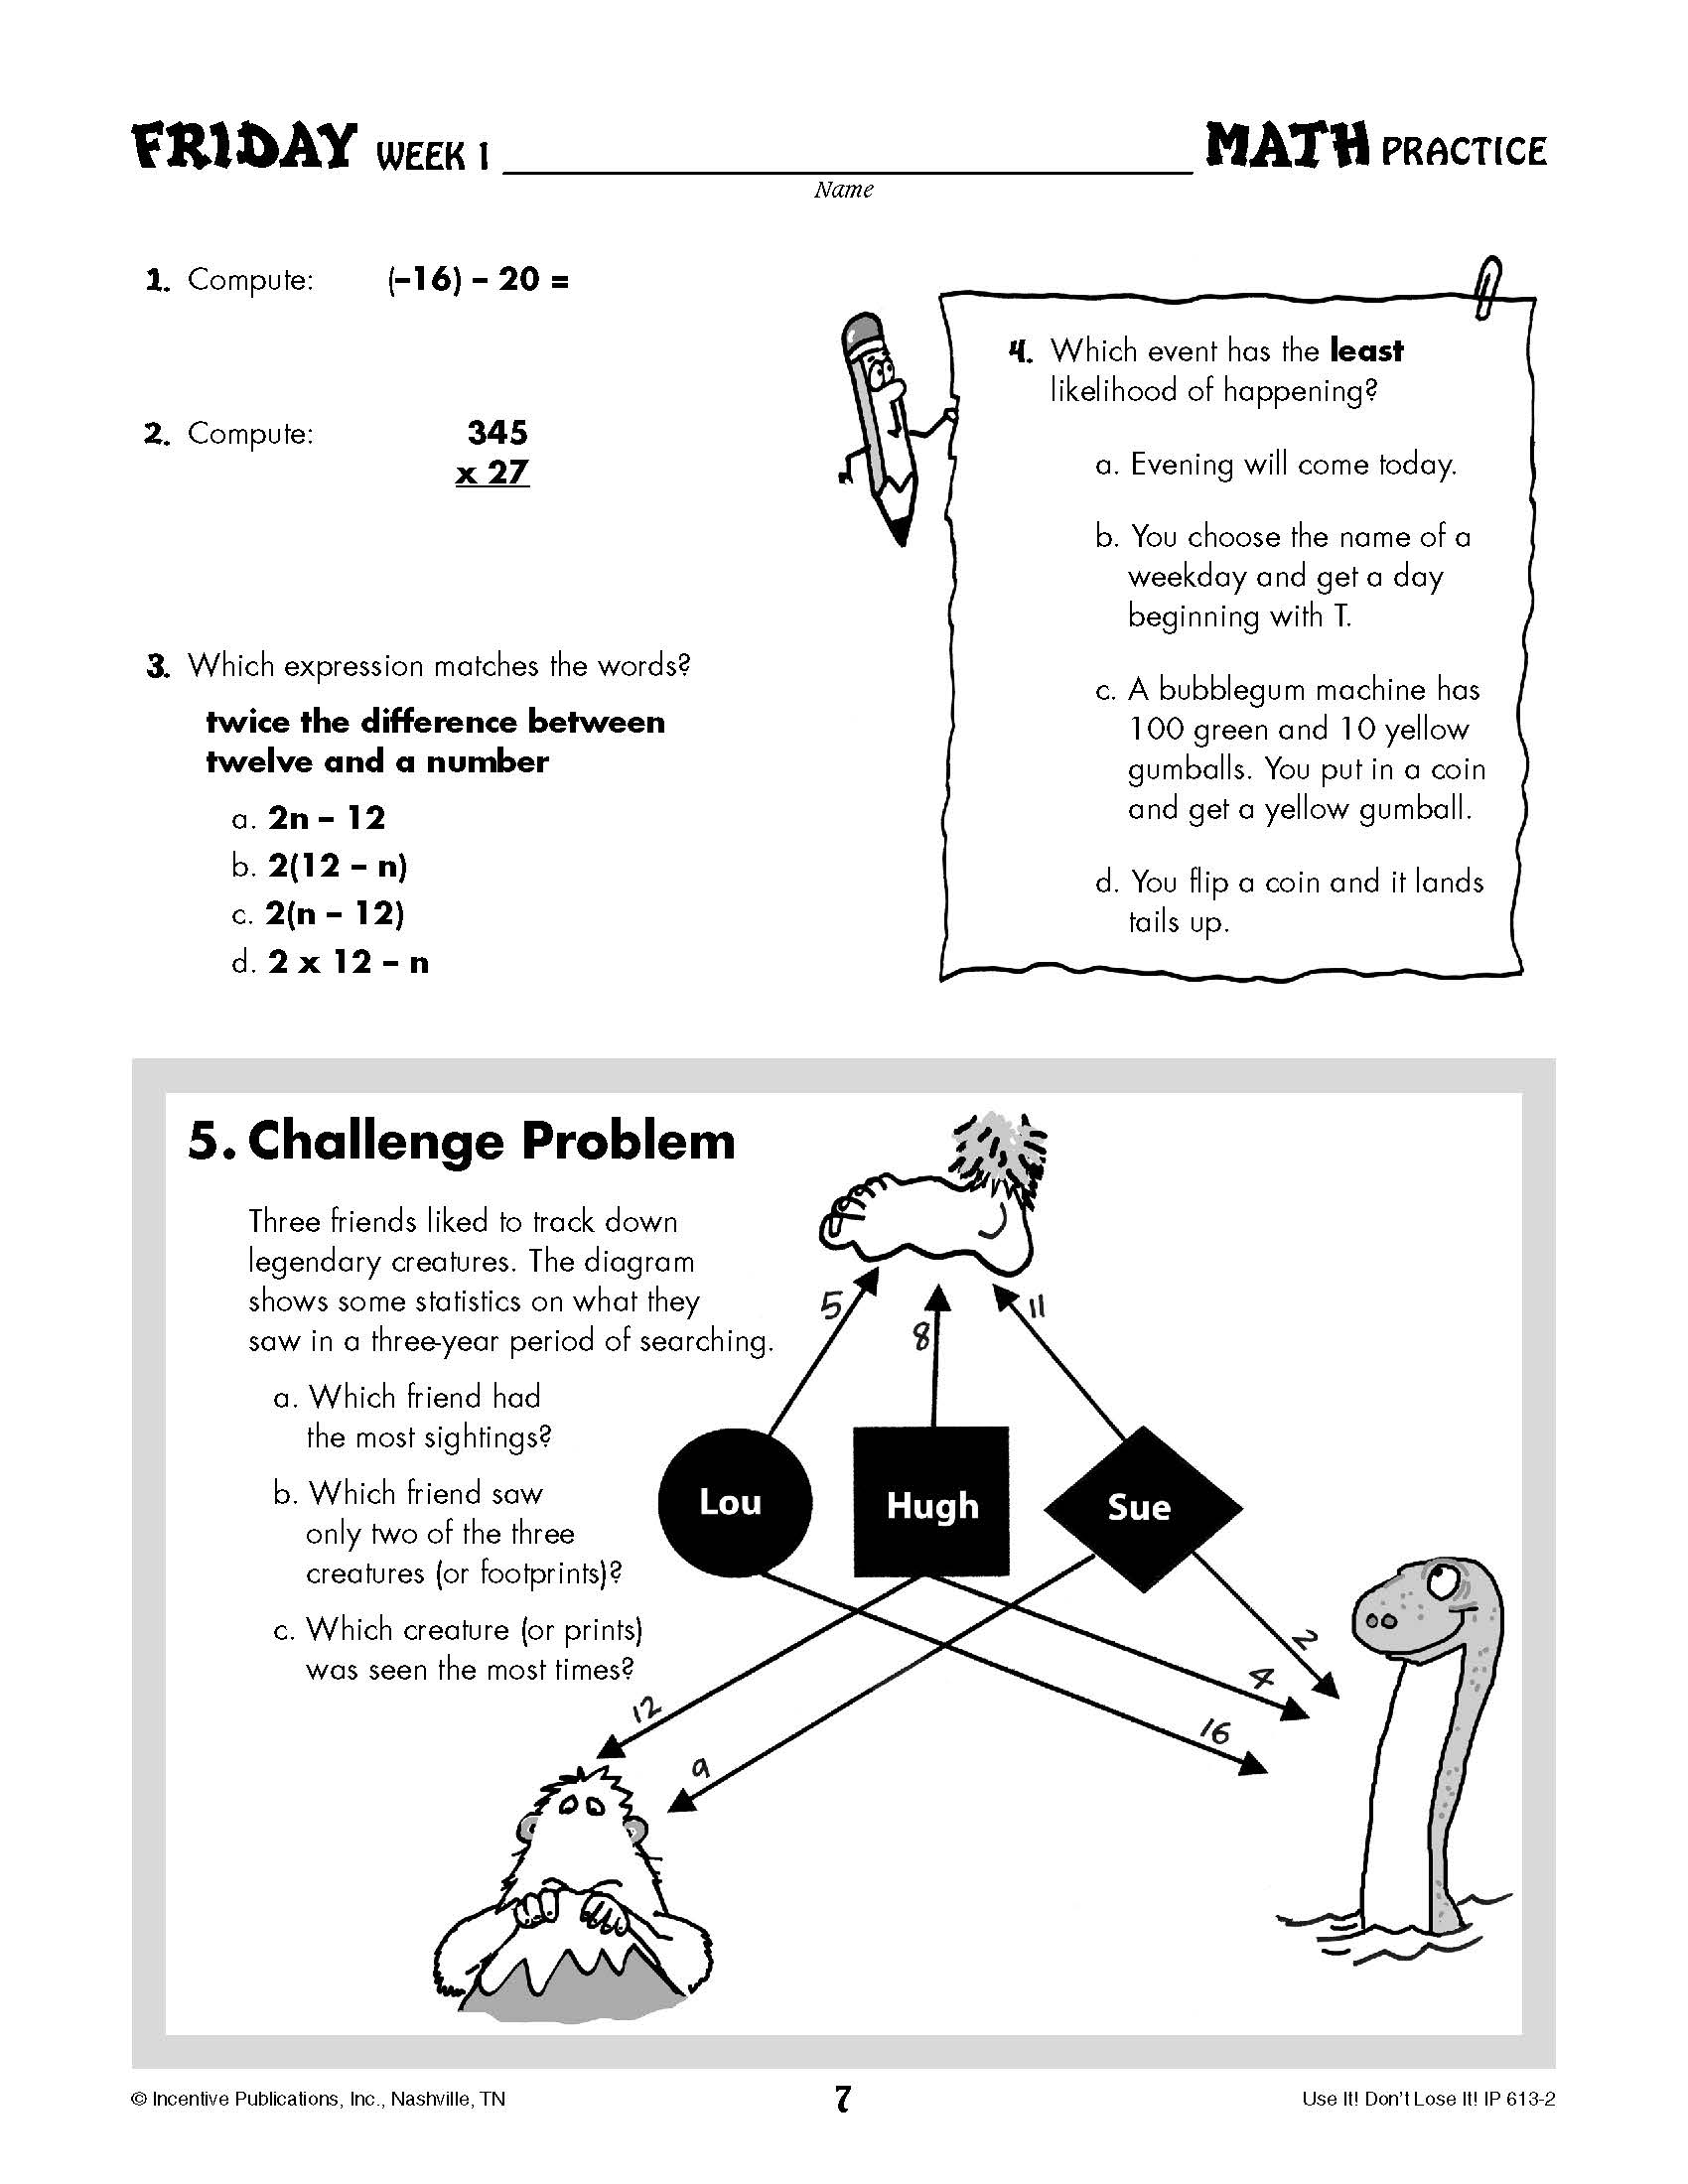 medium resolution of Daily Math Practice Grade 7: Use It! Don't Lose It!   World Book